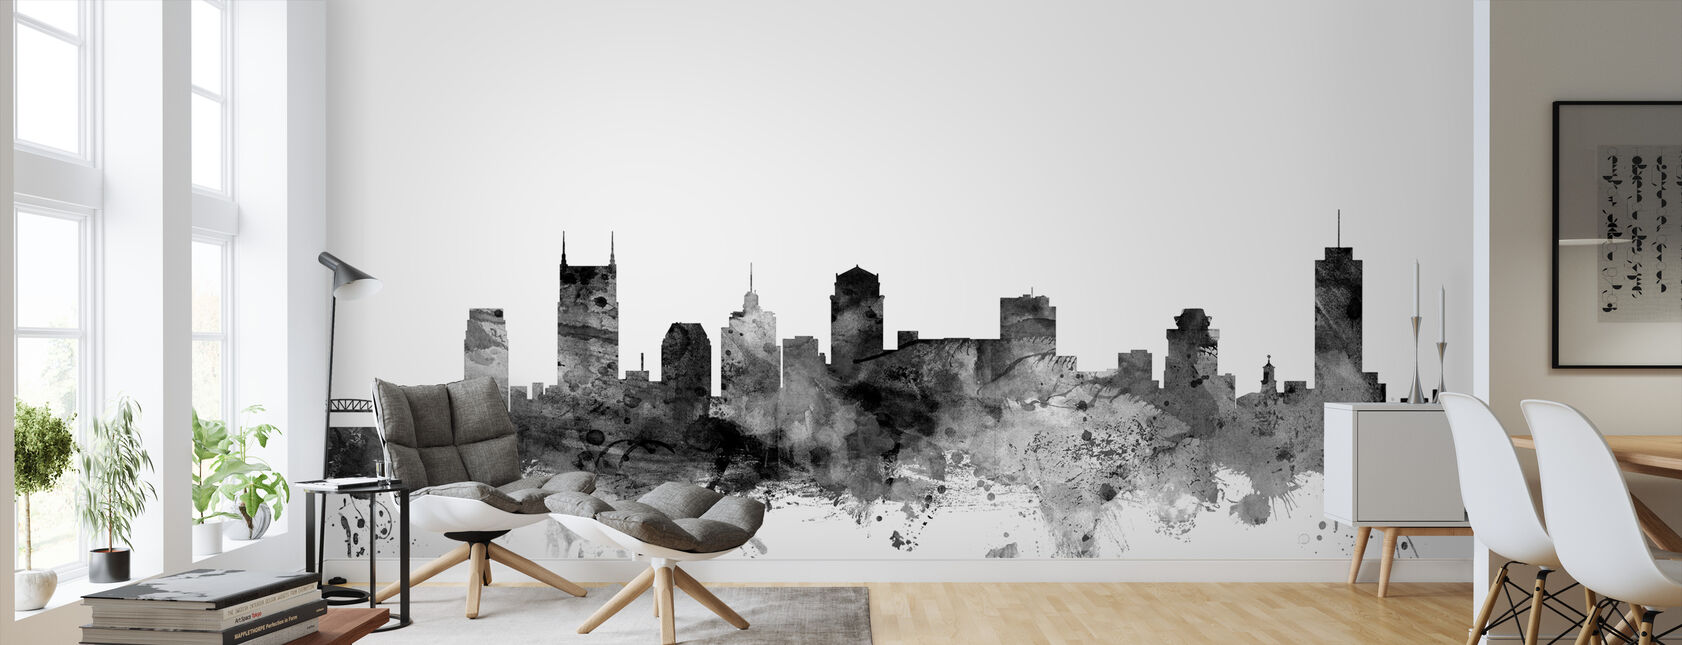 Nashville Tennessee Skyline Black - Wallpaper - Living Room